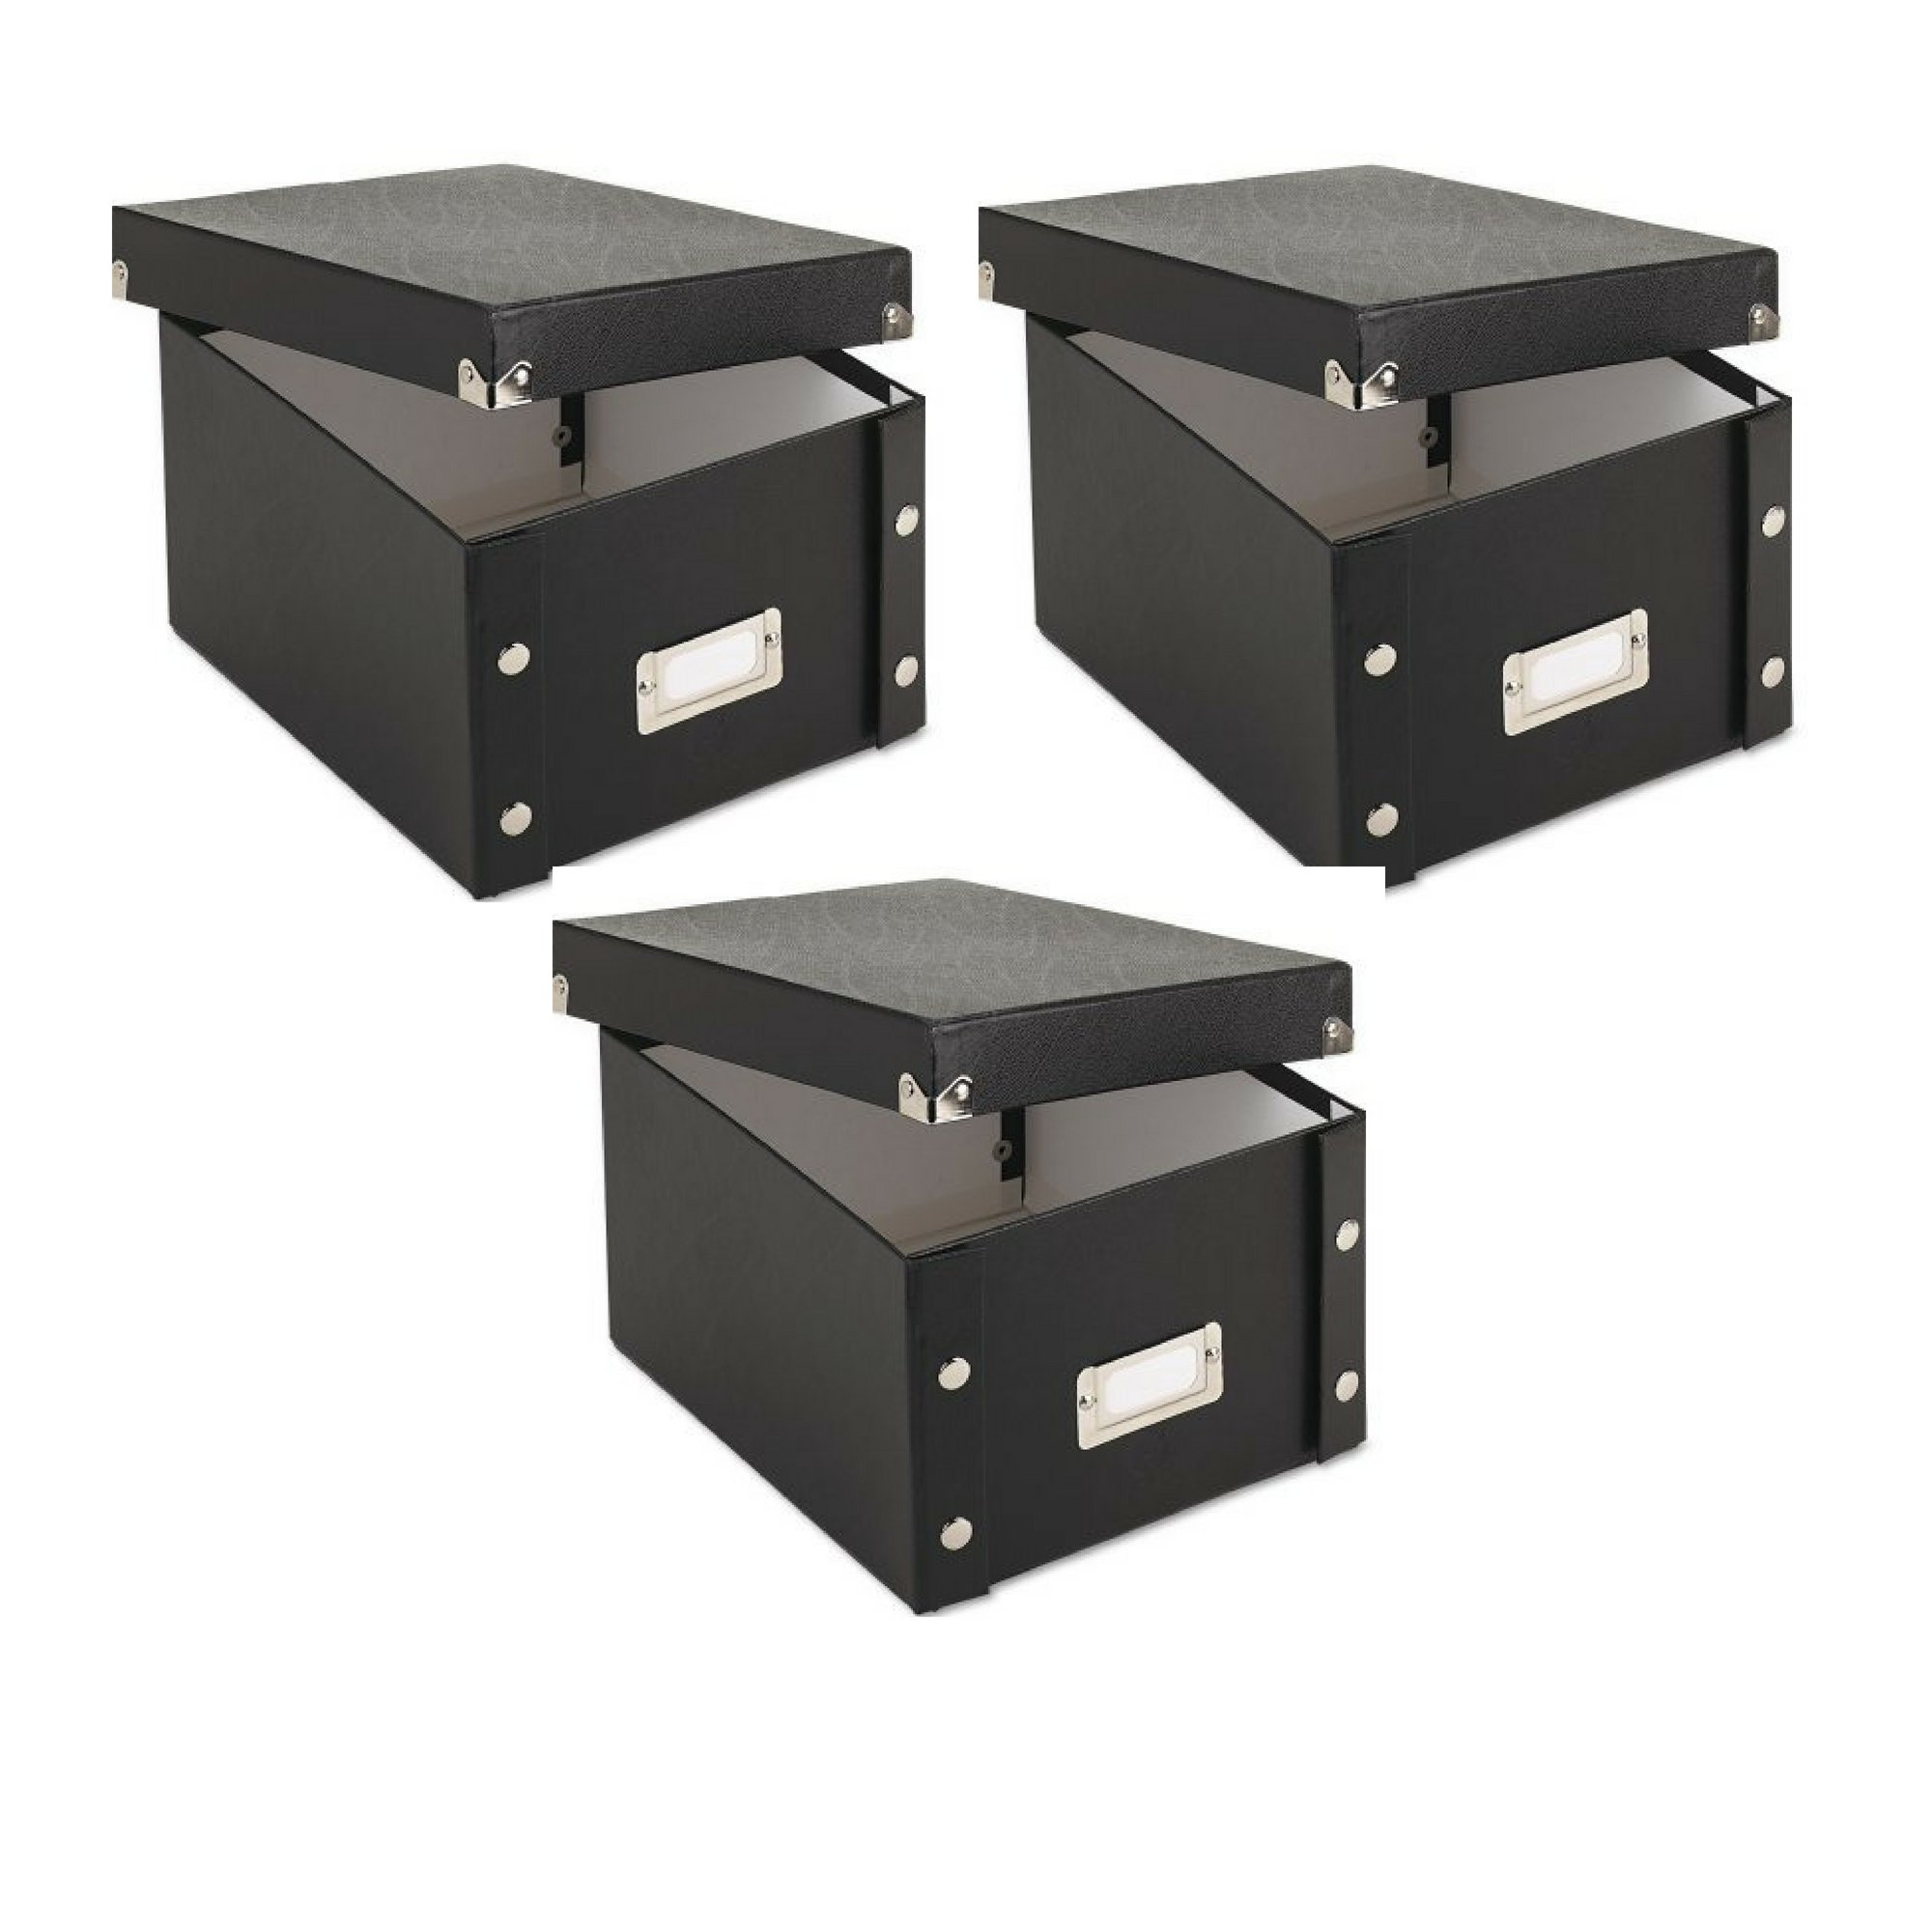 Snap-N-Store Collapsible Index Card File Box, Holds 1,100 5 x 8 Cards, Black - 3